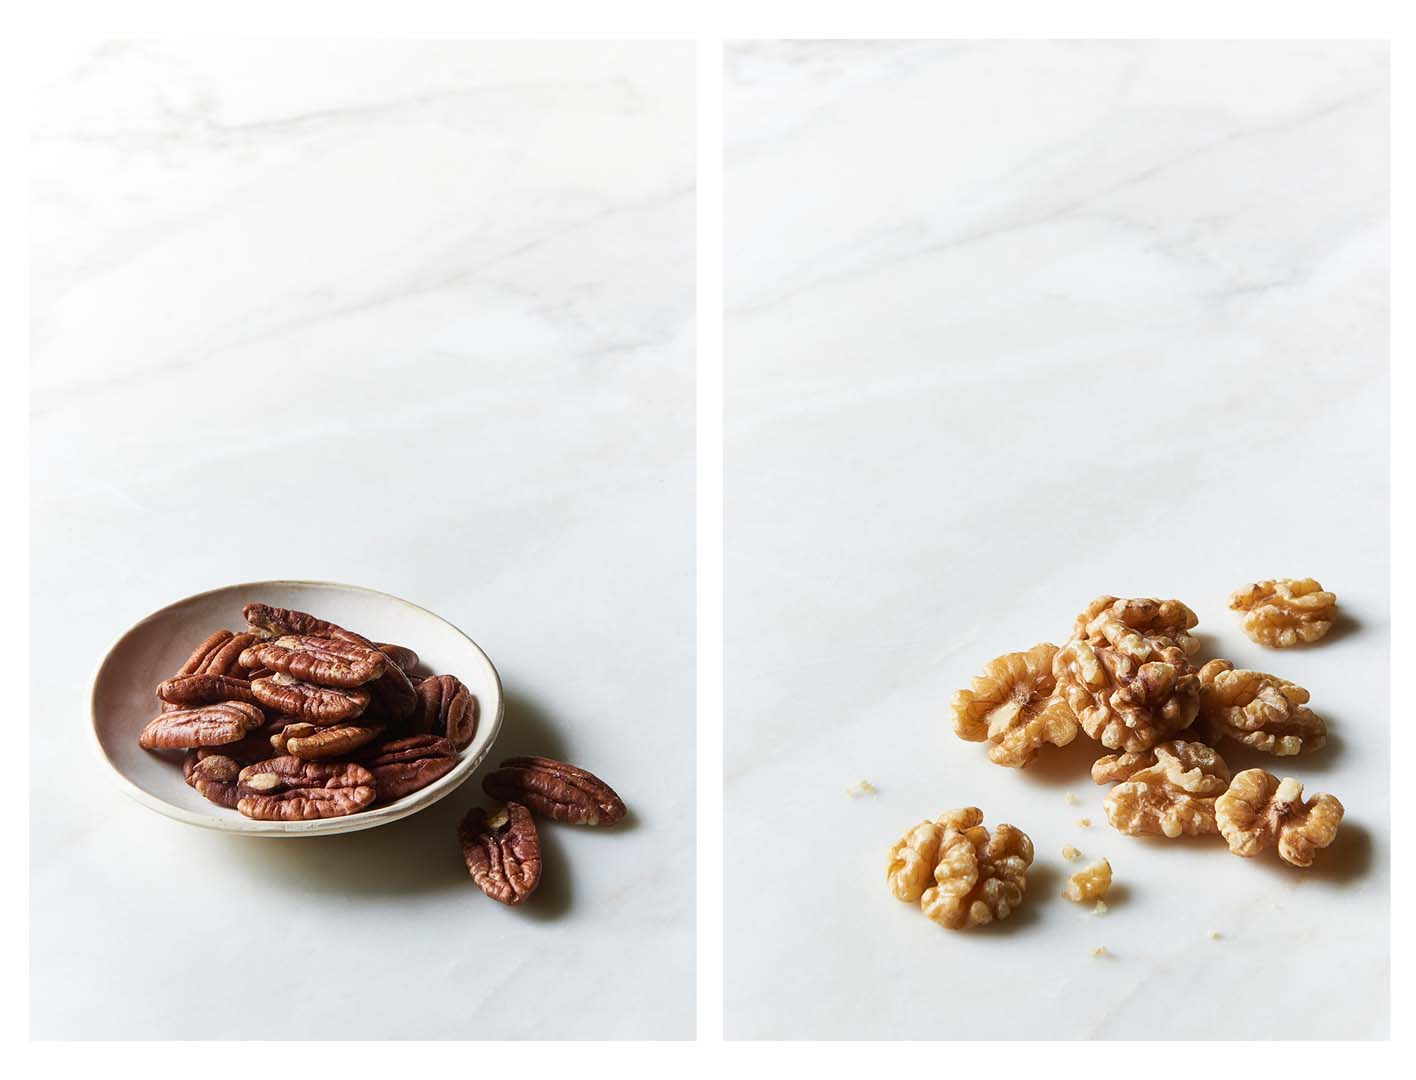 Raw Nuts - Tips For Using Them In Delicious Recipes - The Blender Girl